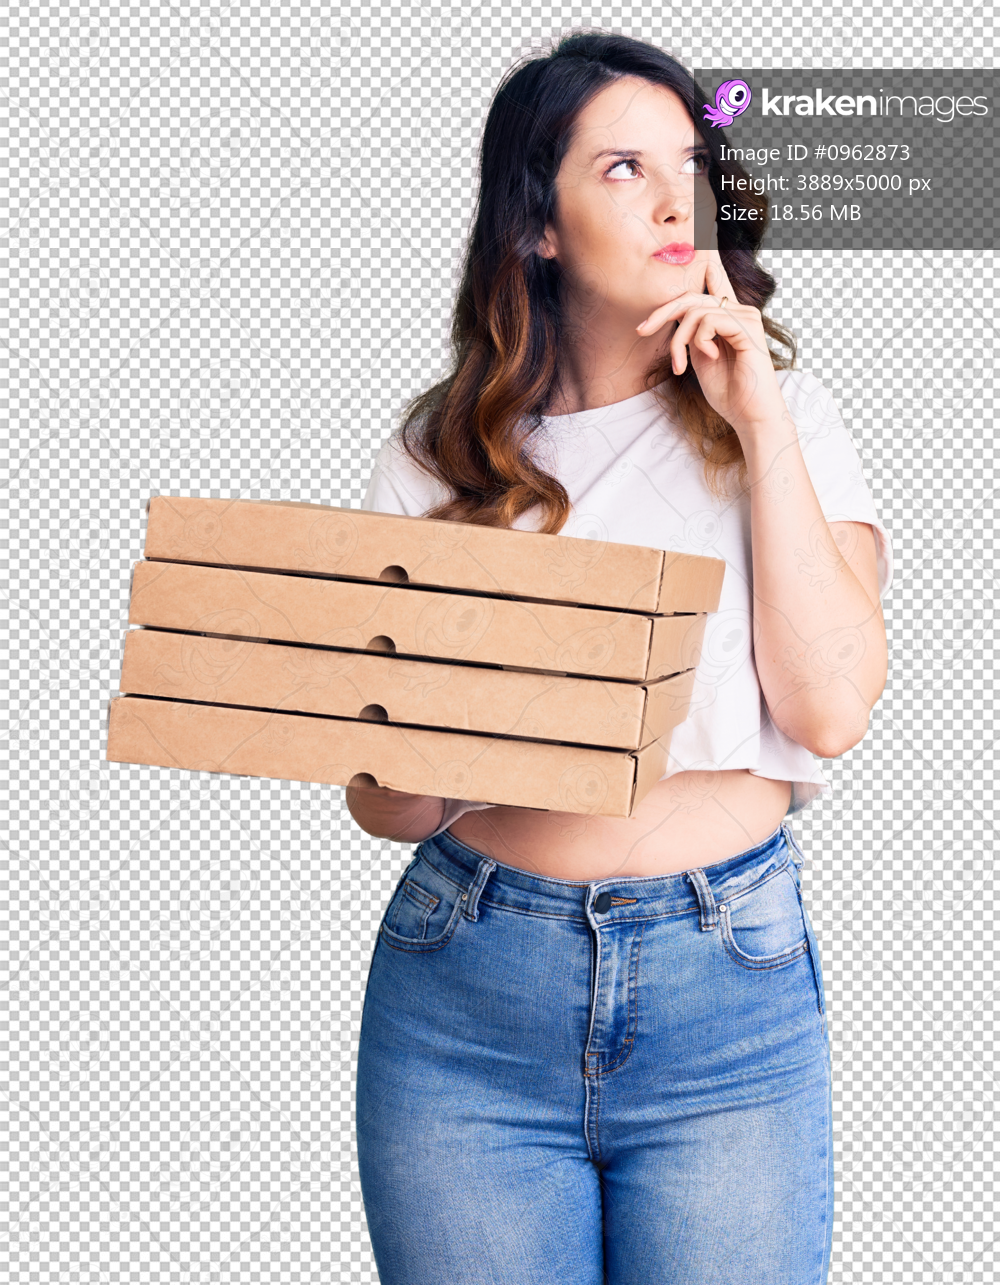 Beautiful young brunette woman holding delivery pizza box serious face thinking about question with hand on chin, thoughtful about confusing idea